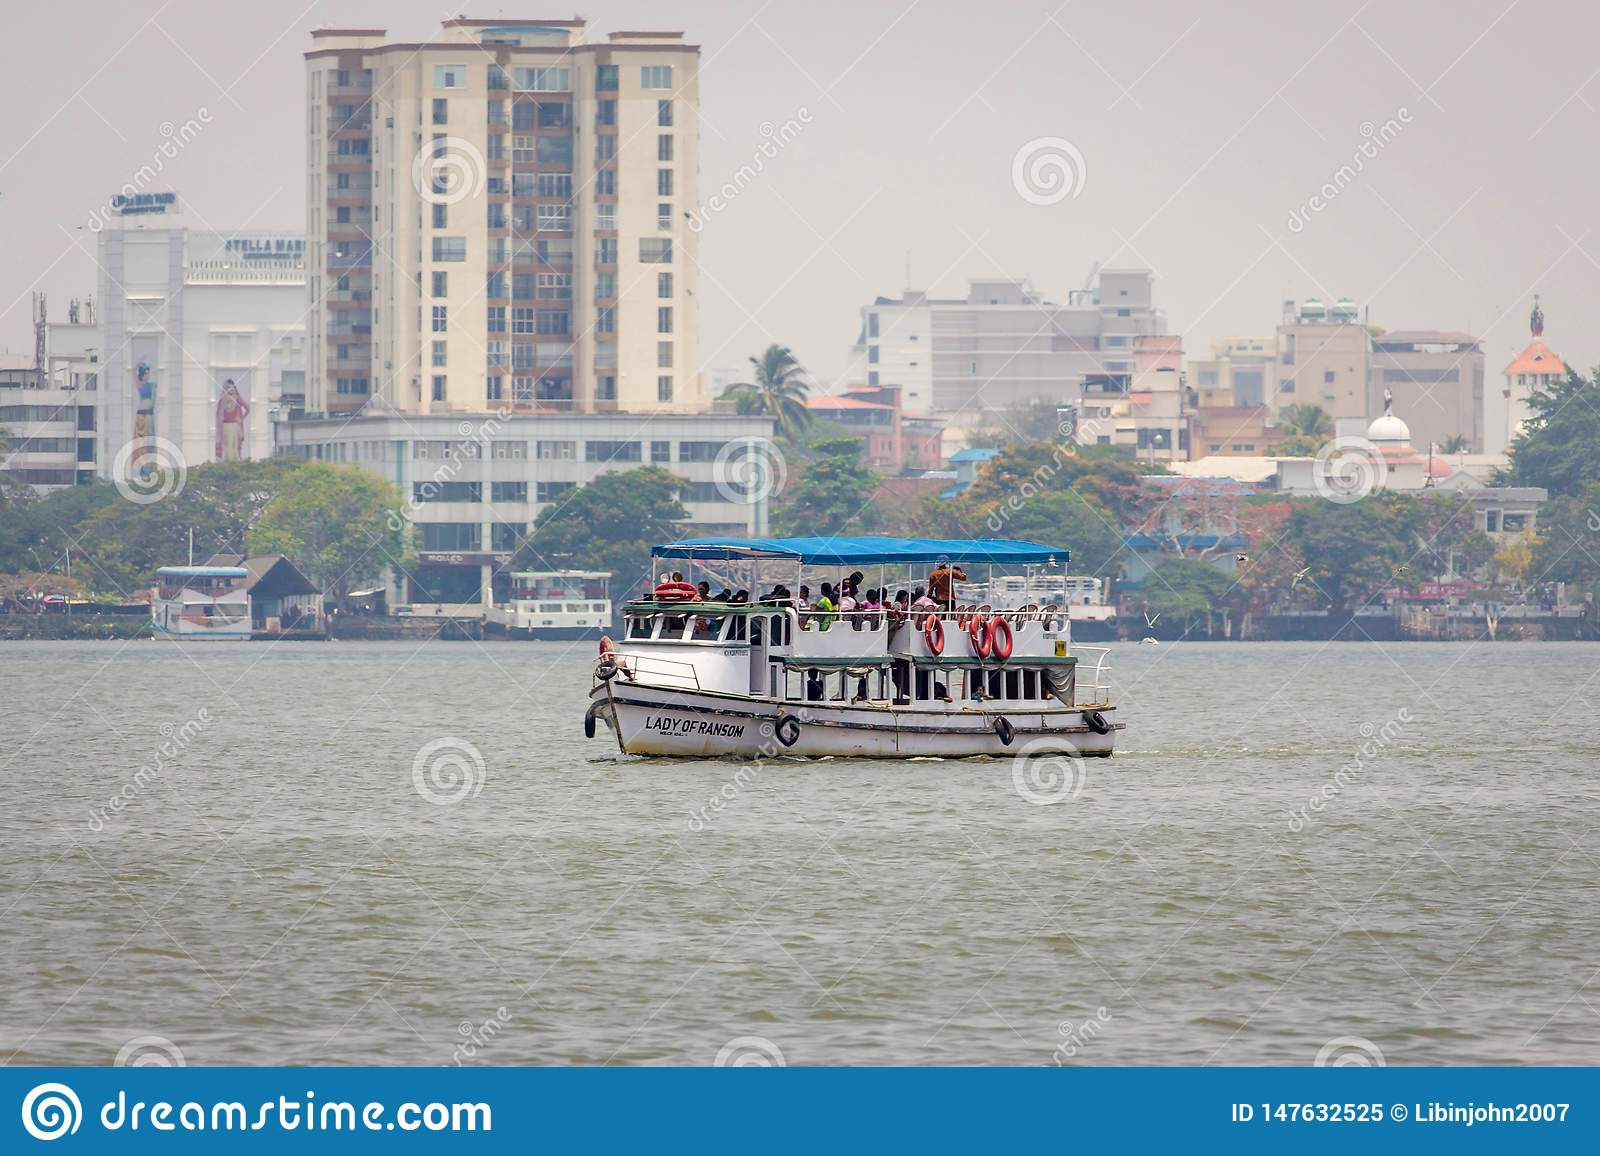 Peoples traveling on boat in Arabian sea Kochin